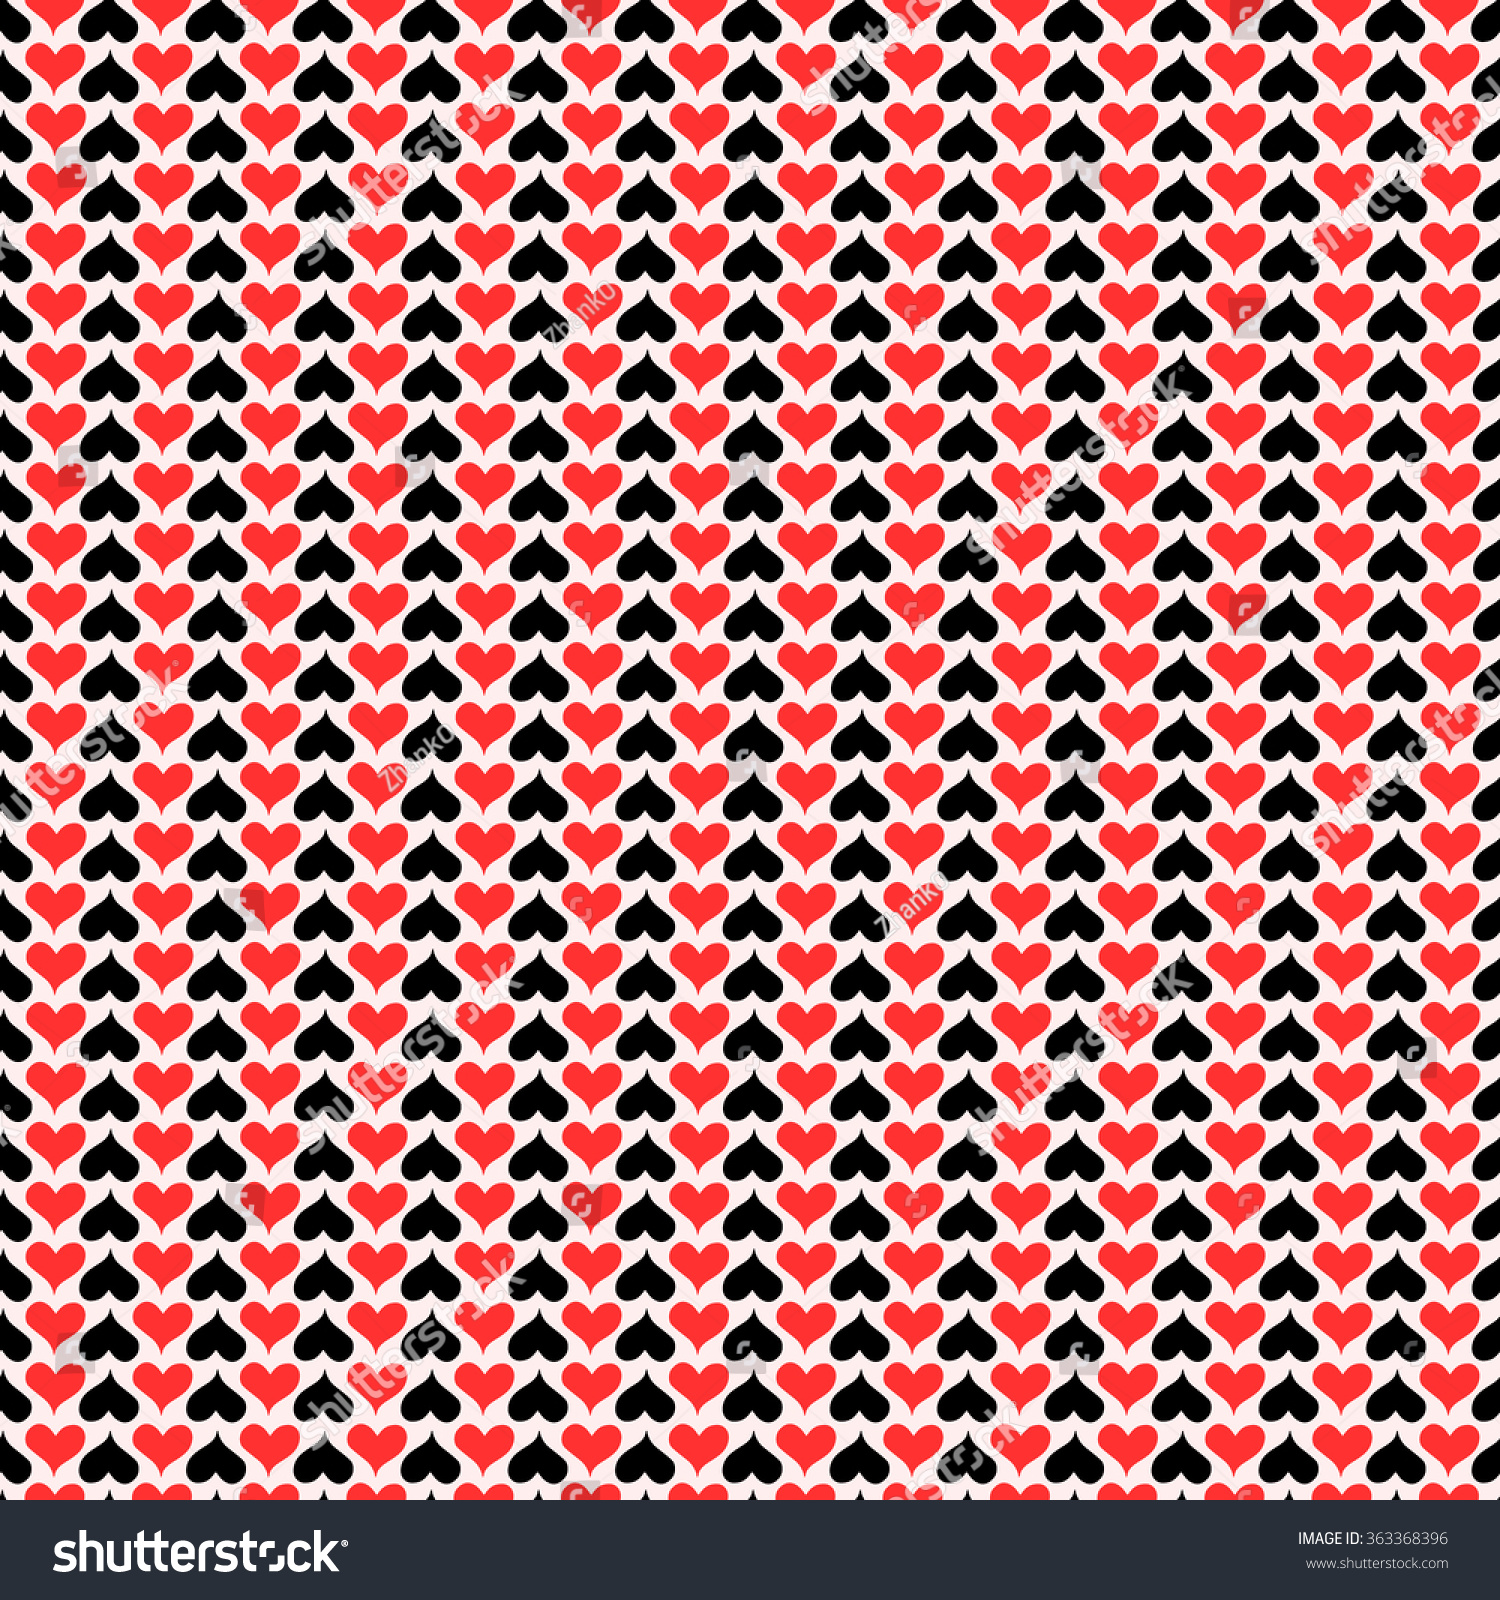 Vector Pattern With Red And Black Hearts On Light Background Seamless Can Be Used